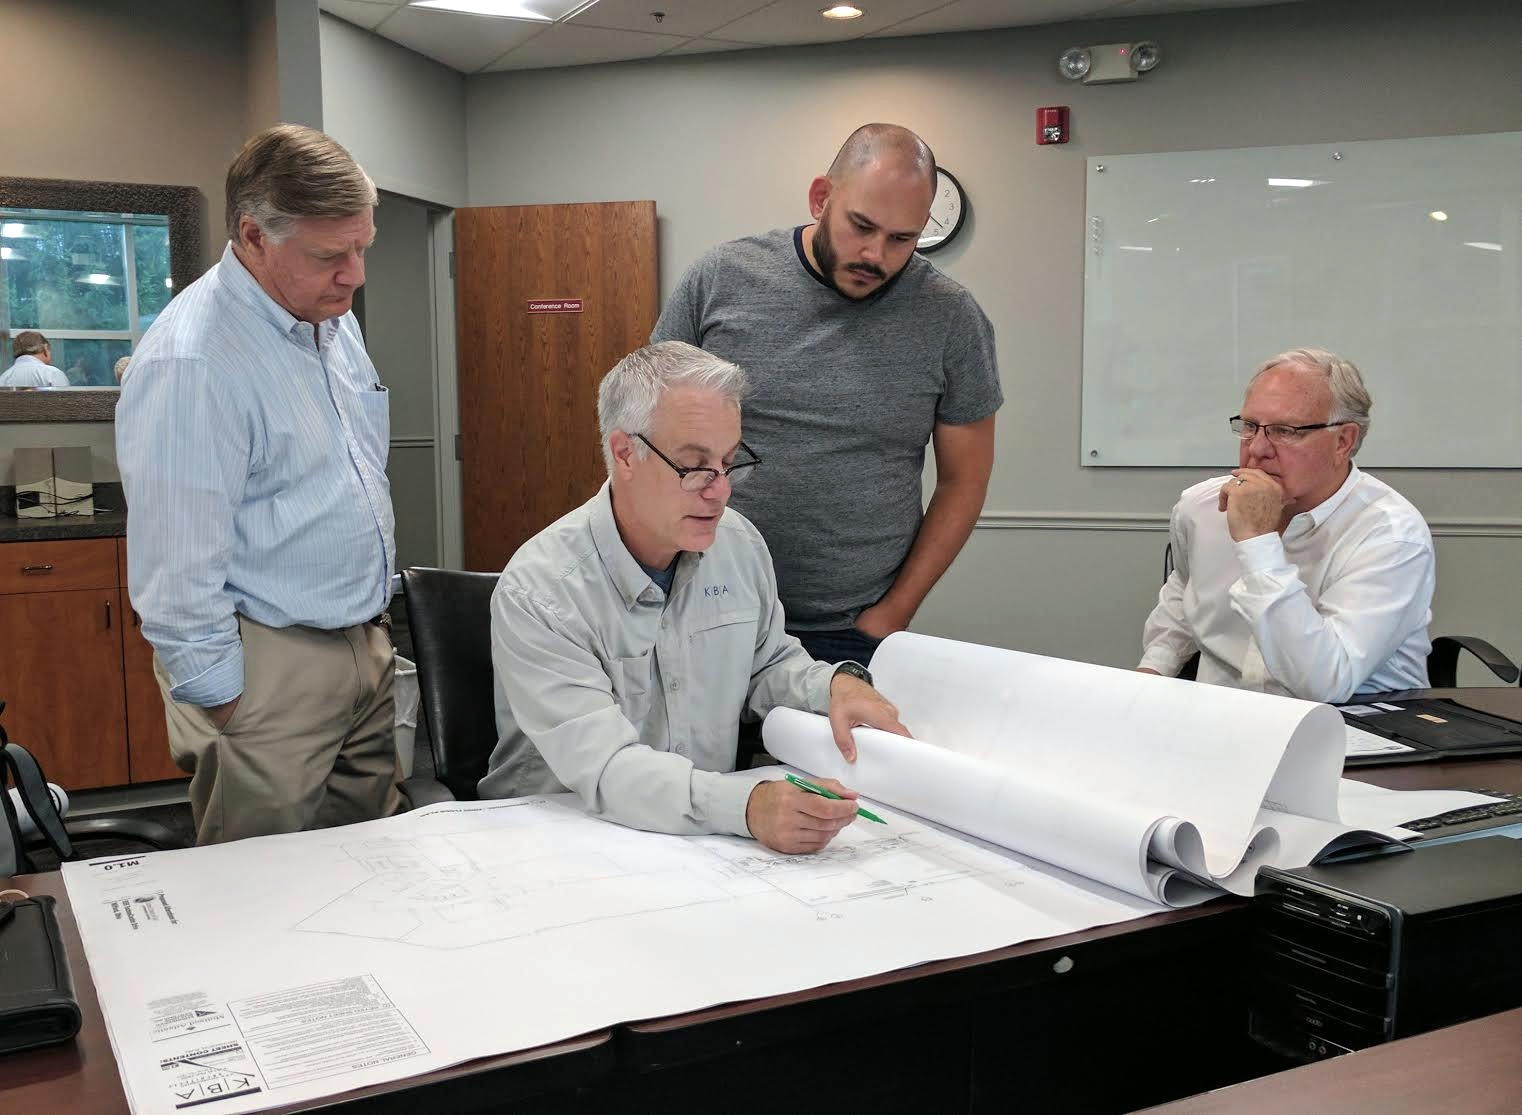 The most recent studio planning meeting was held on August 4 with Mark Bredemeier (KBA Architects), Mike Barnard (M.L. Barnard, Inc.), Peter Eddington, Rudy Rangel, Tim Sipes and Kubik.